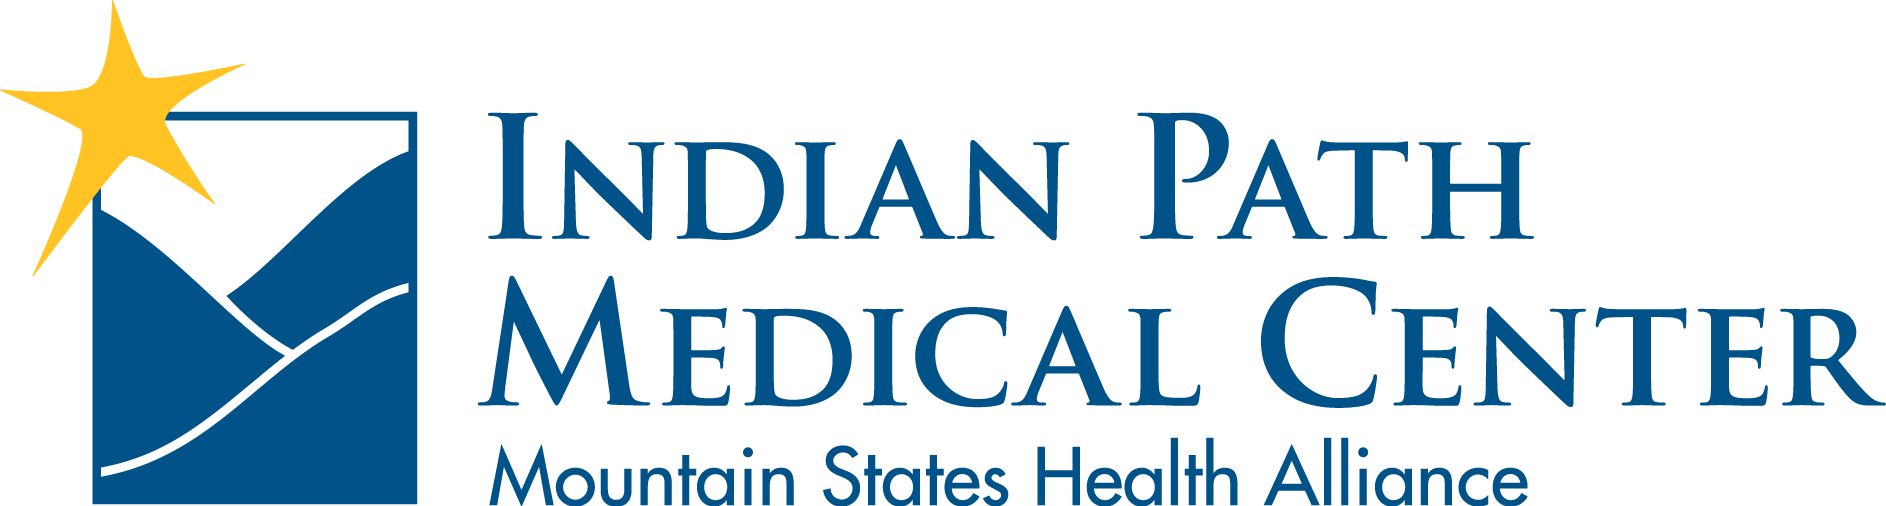 Indian Path Medical Center 2 color